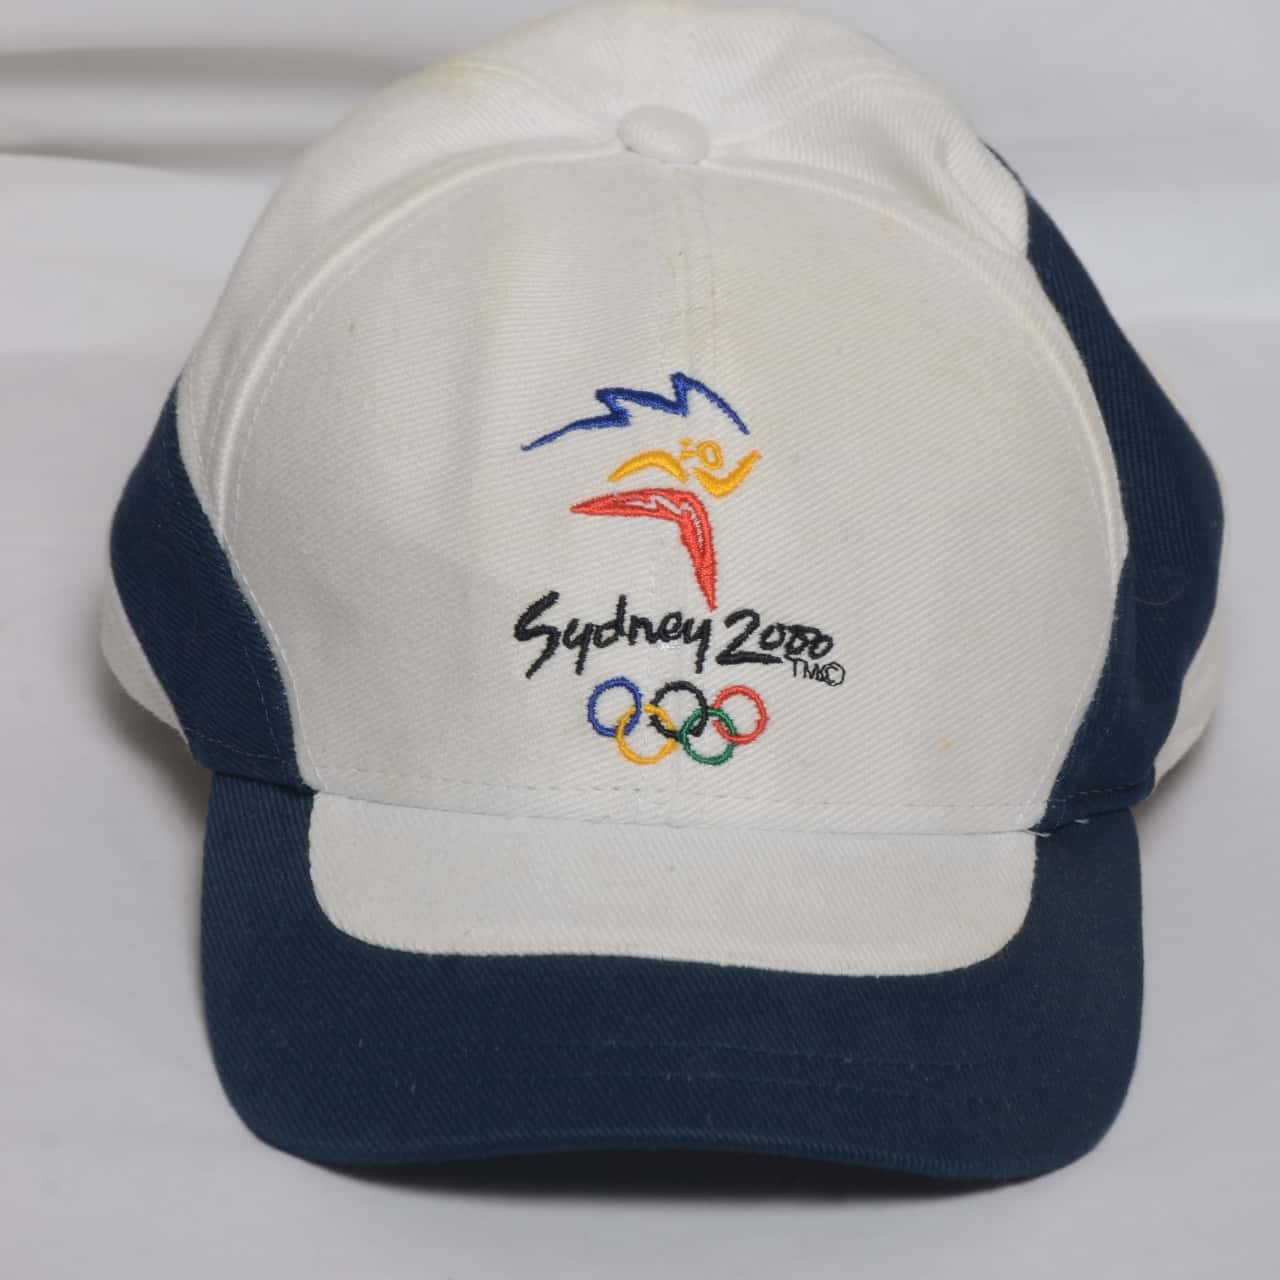 Sydney 2000 Olympic Millennial Collection CAP